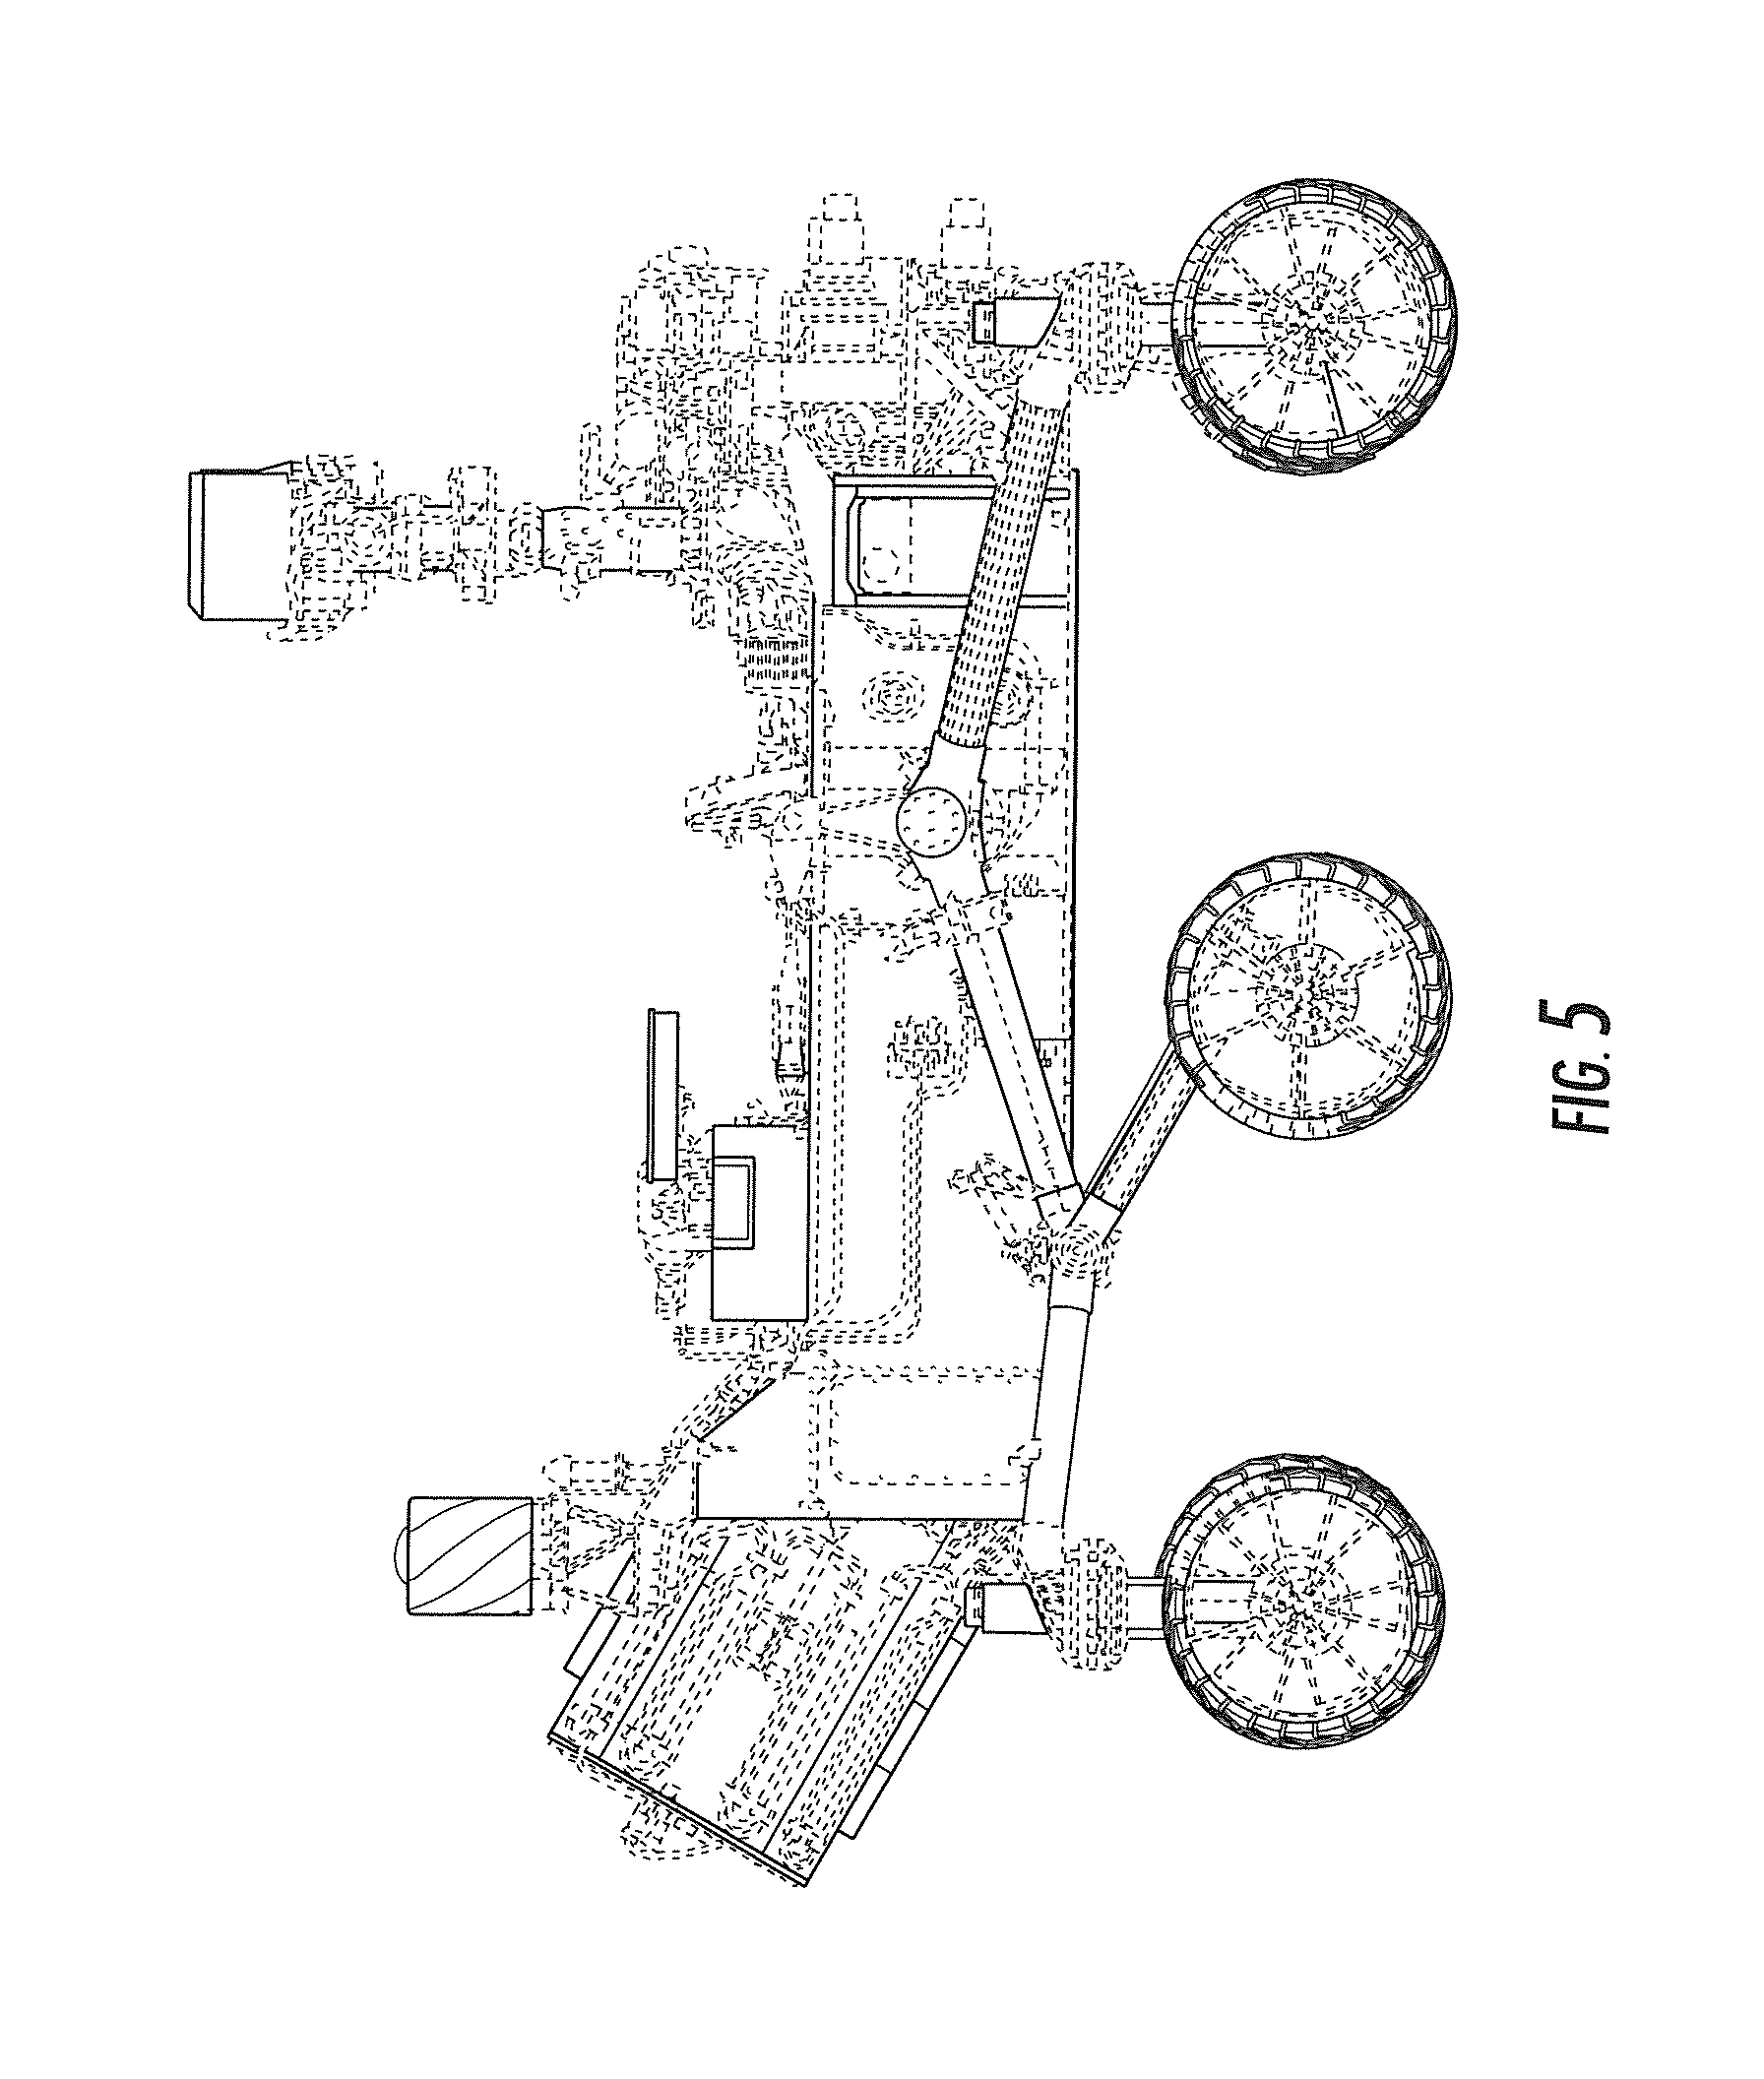 mars curiosity rover technical drawing - photo #12